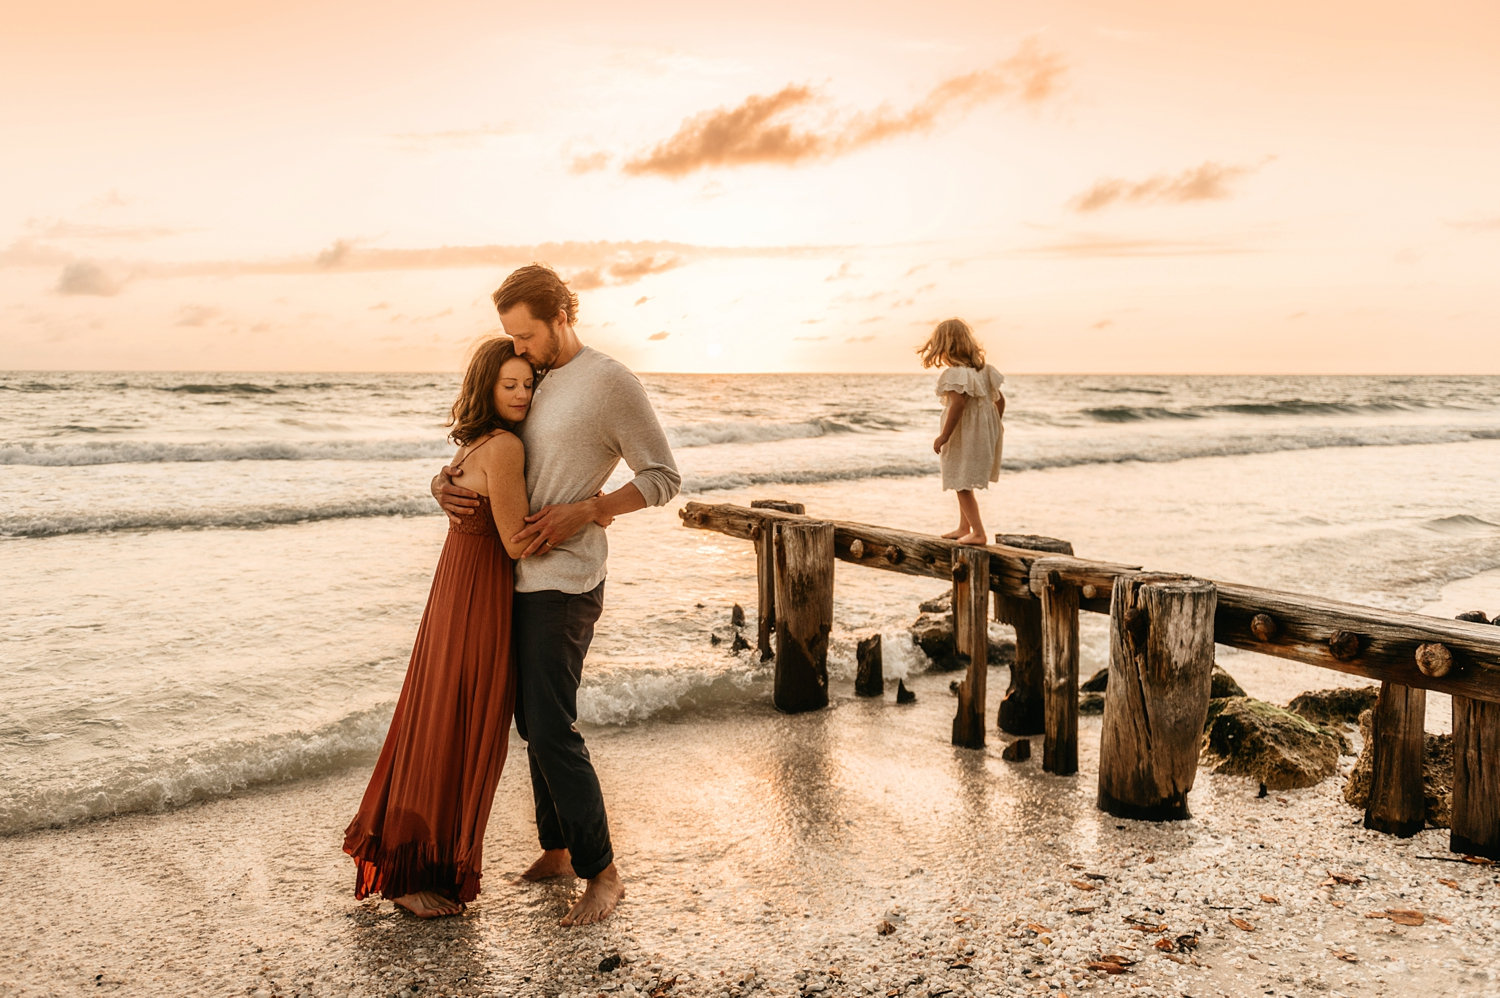 mom and dad hugging at the beach while little girl plays in background, Rya Duncklee Photos